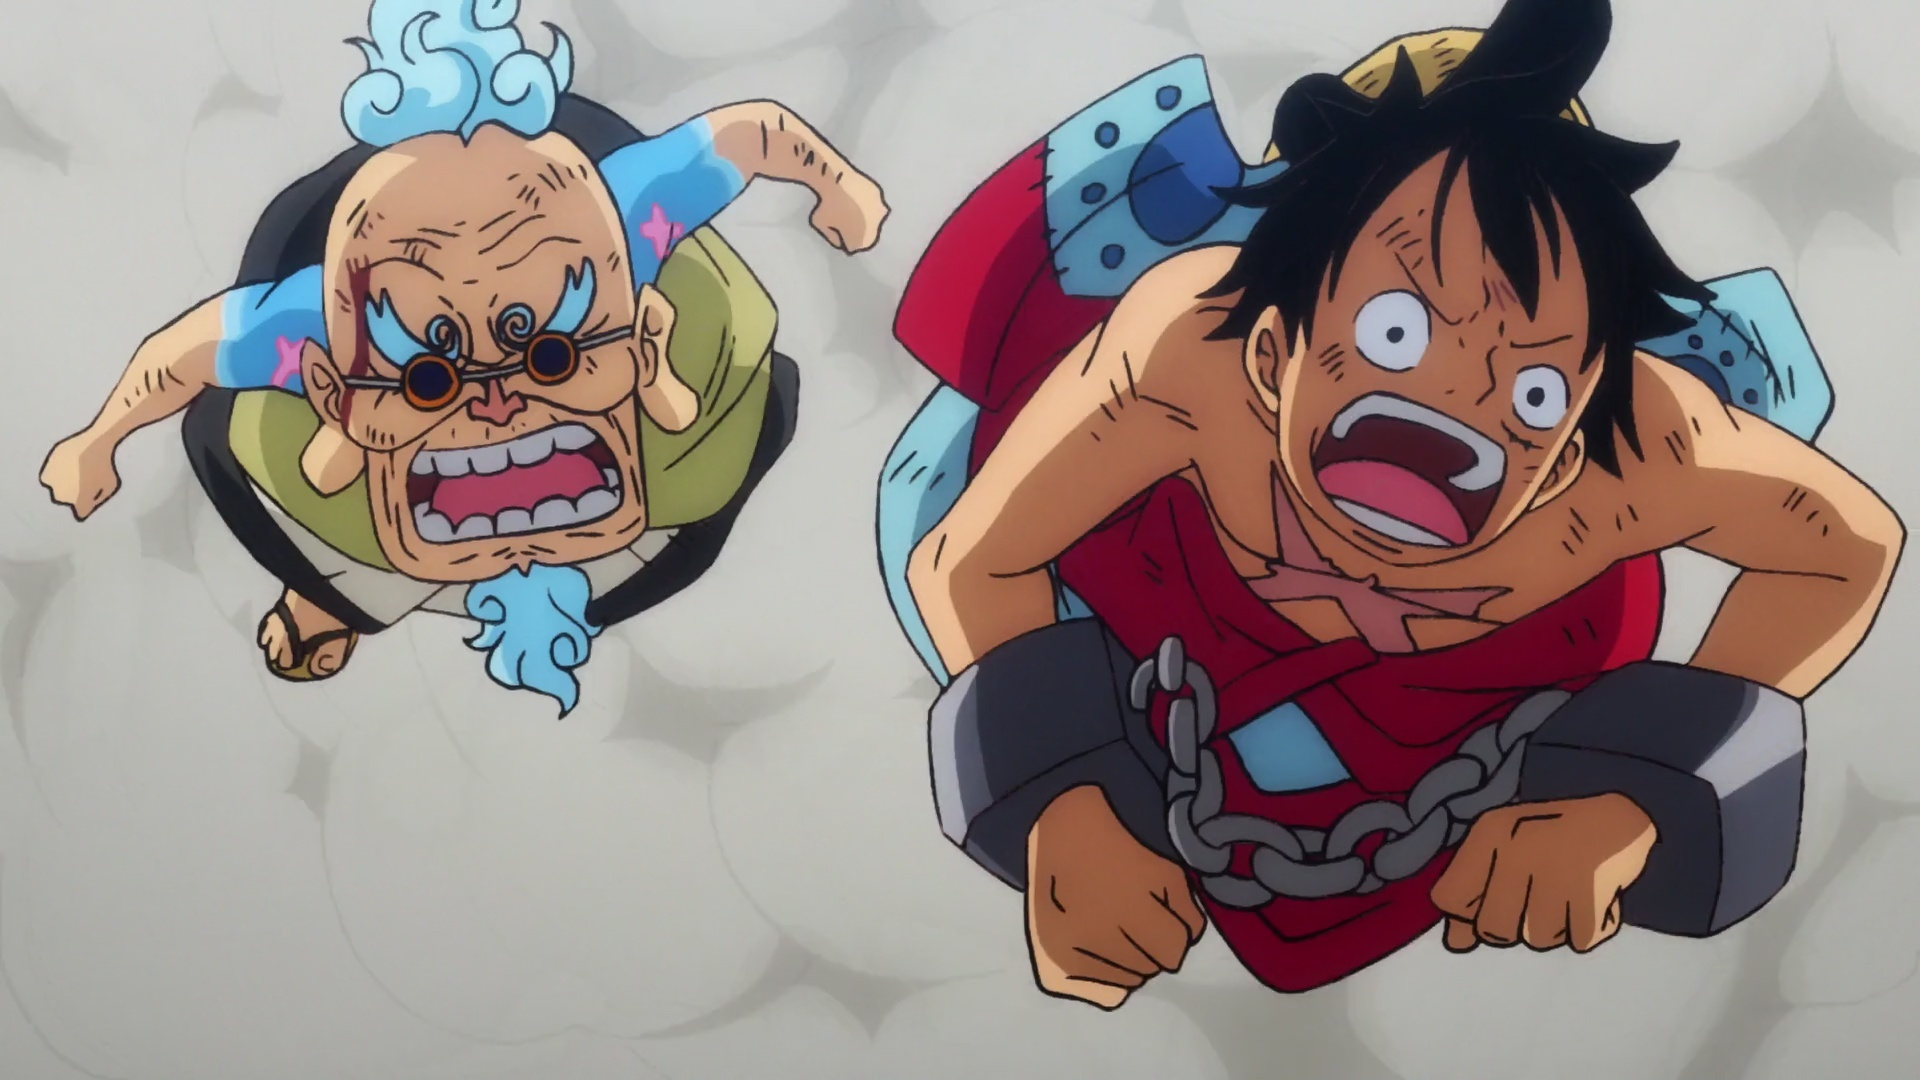 ONE PIECE 931 VOSTFR SD/HD/HD 10BITS/FHD News background